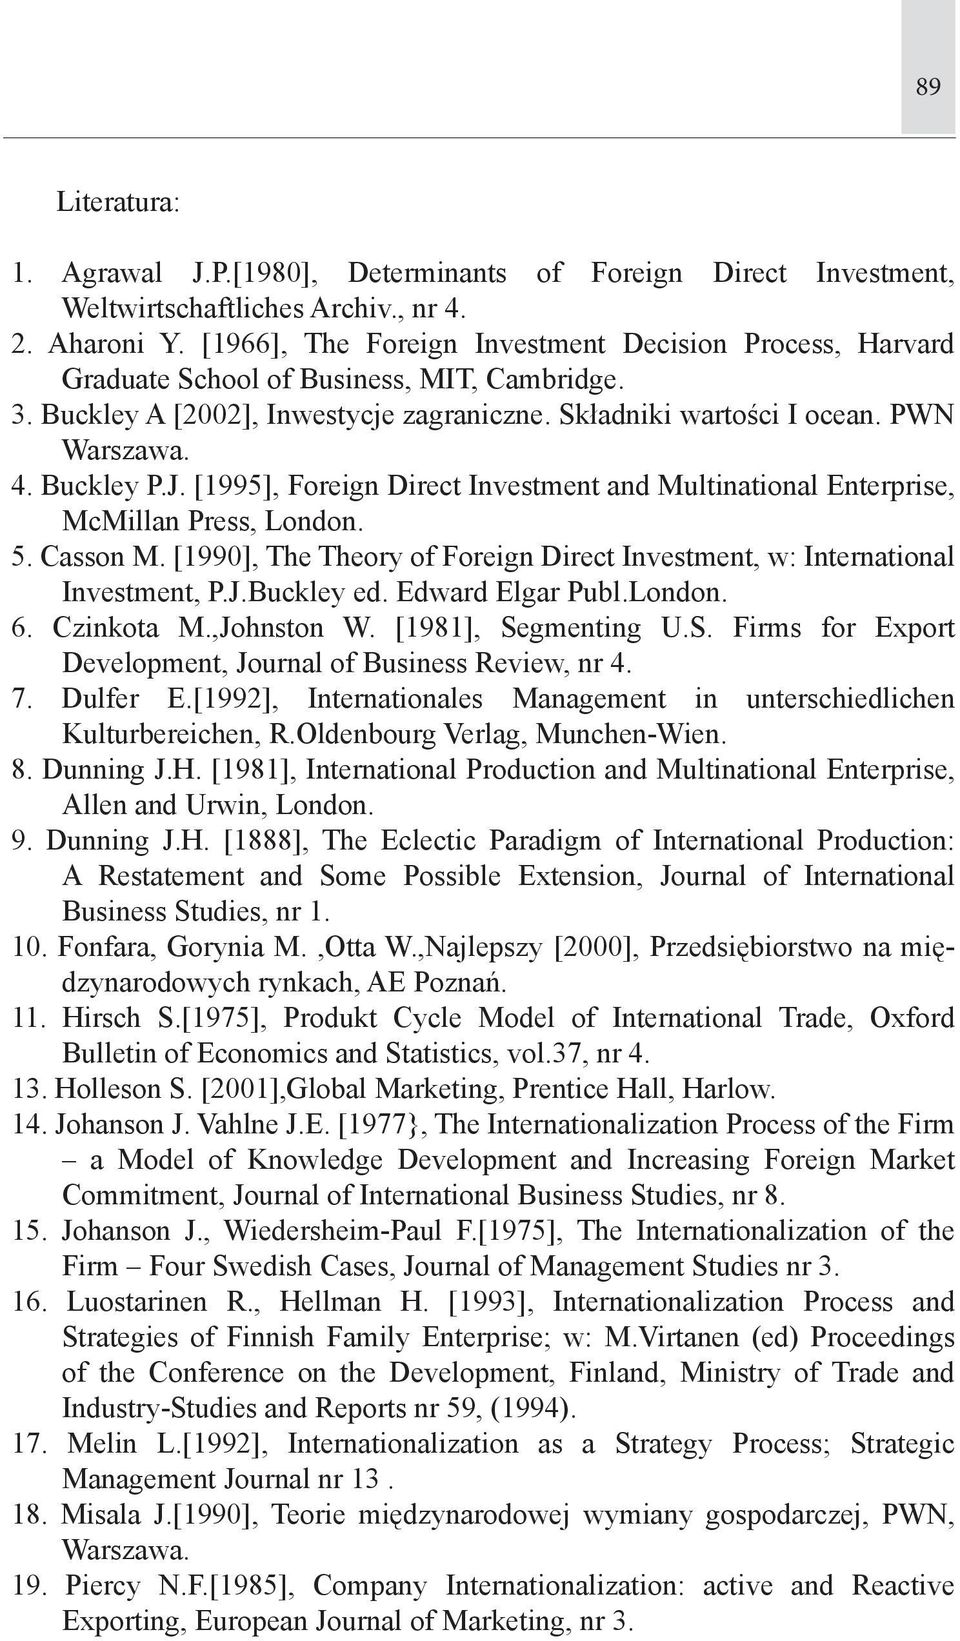 Buckley P.J. [1995], Foreign Direct Investment and Multinational Enterprise, McMillan Press, London. 5. Casson M. [1990], The Theory of Foreign Direct Investment, w: International Investment, P.J.Buckley ed.